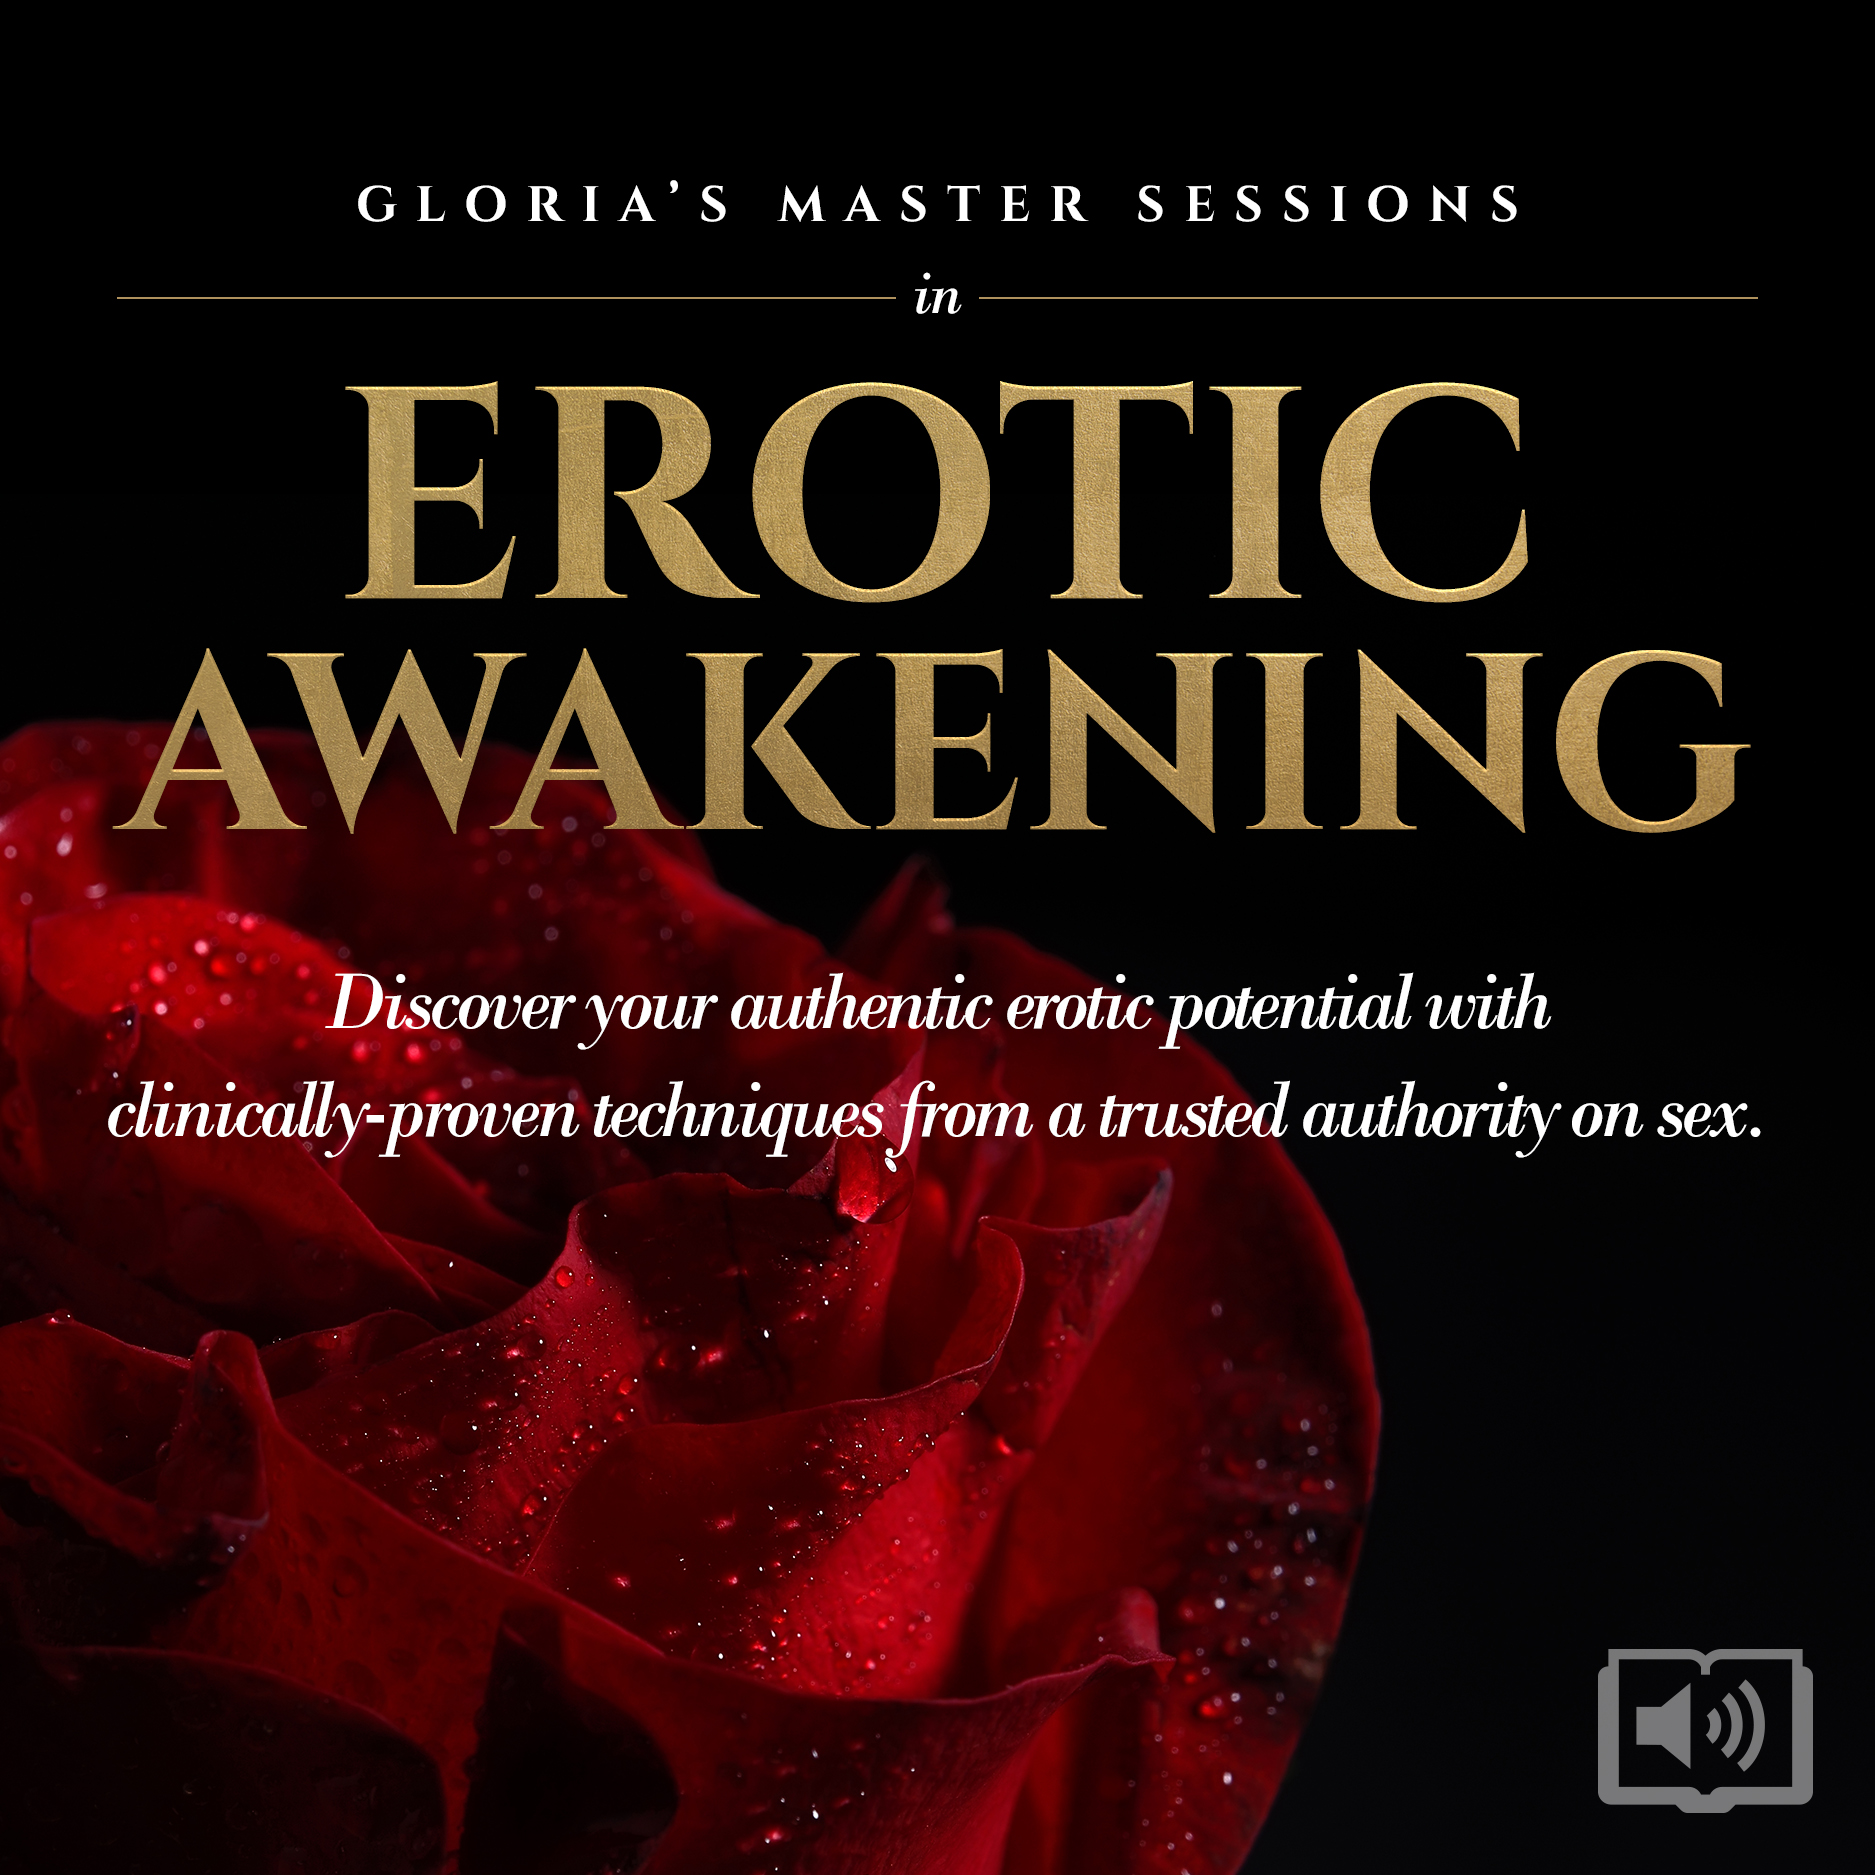 Gloria's Master Sessions in Erotic Awakening